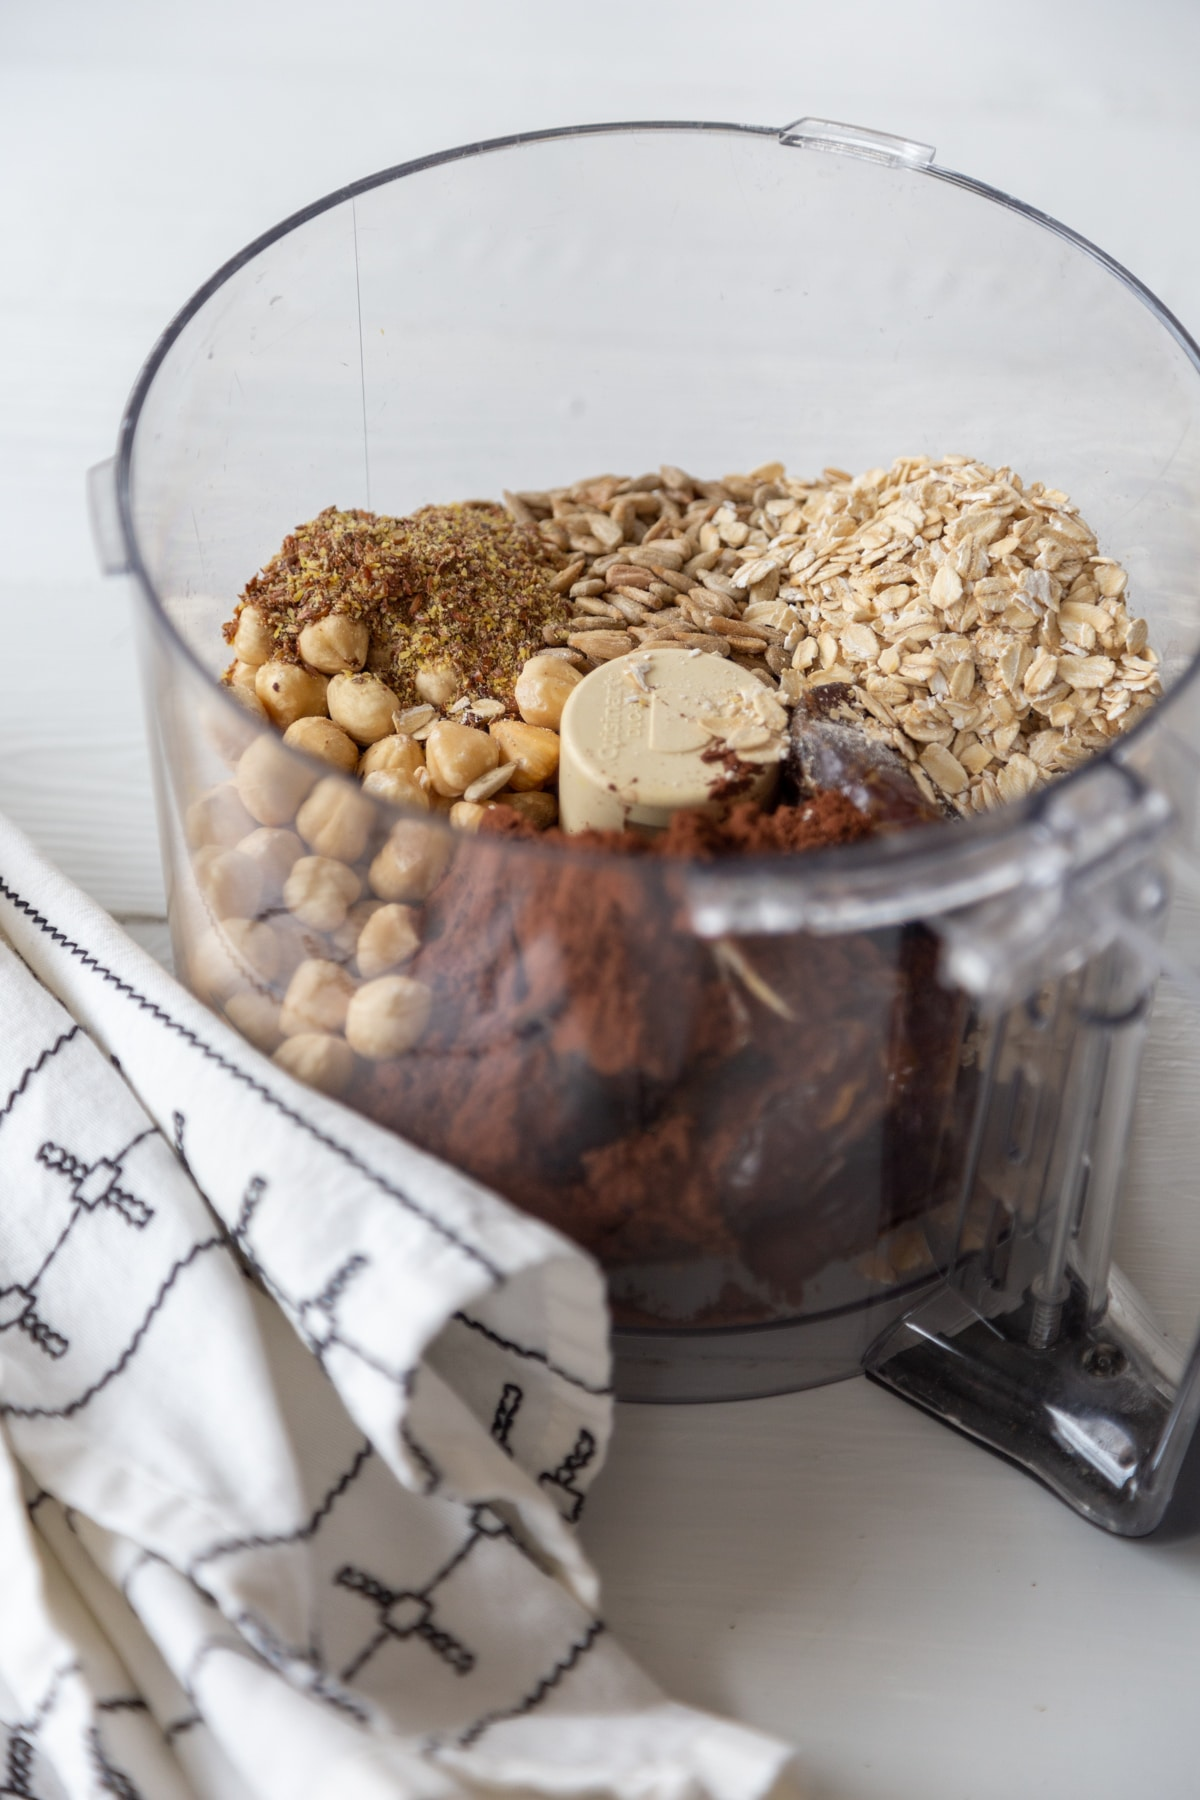 A food processor filled with rolled oats, dates, cocoa powder, and hazelnuts.